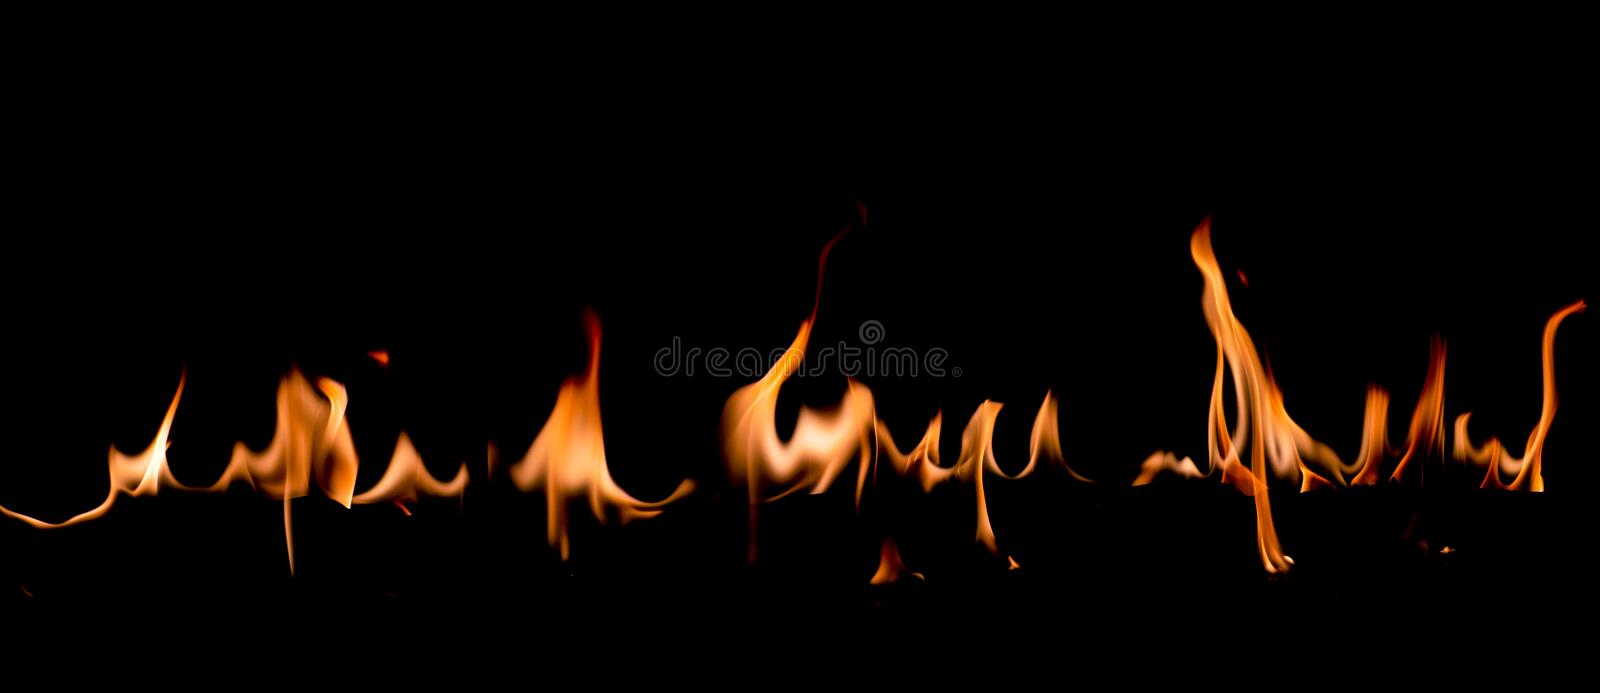 Fire flames on Abstract art black background, Burning red hot sparks rise. Fiery orange glowing flying particles stock photography